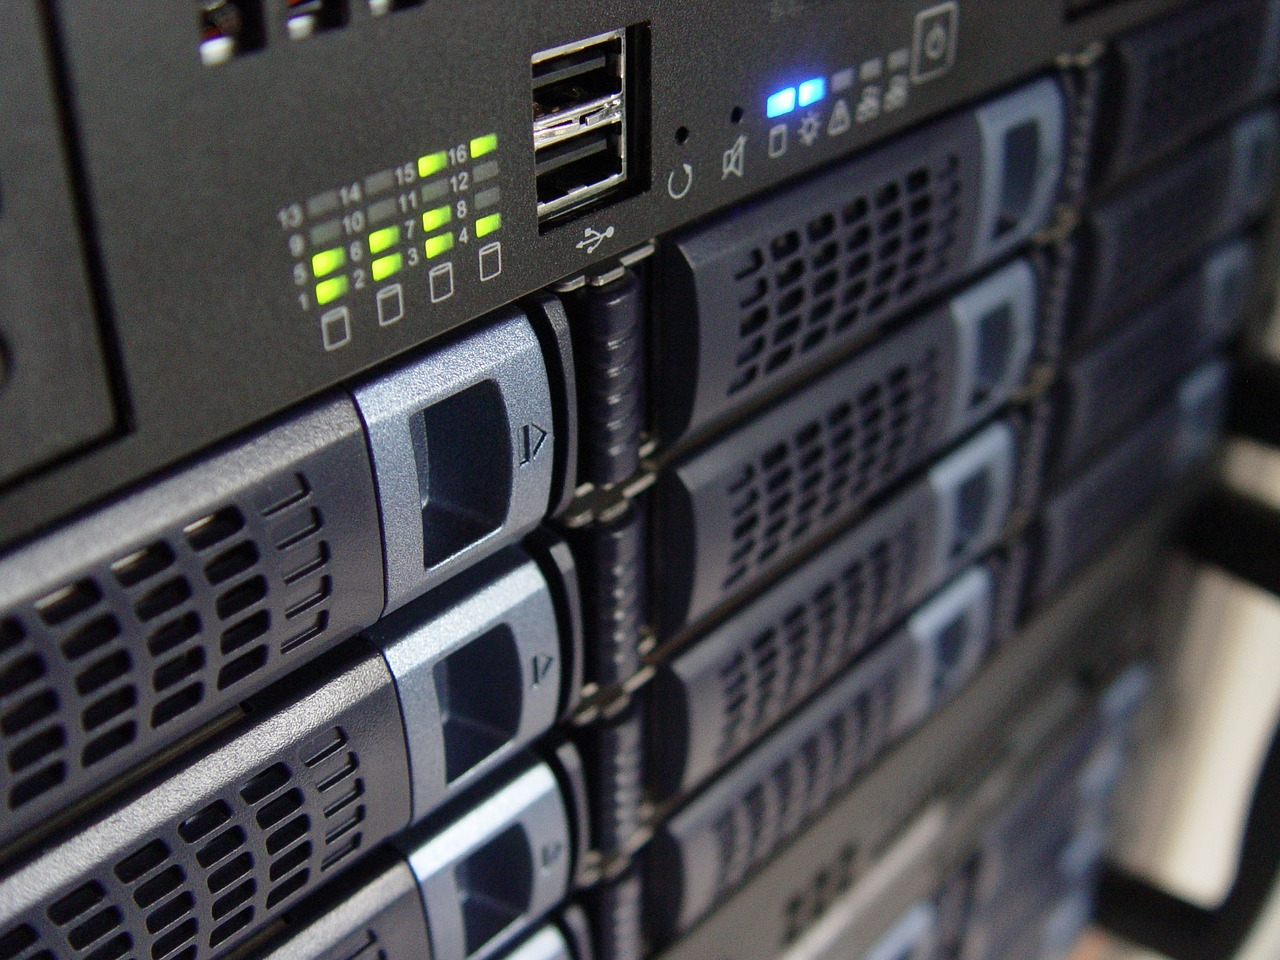 Businesses pursue new tech without equal attention to cyber threats